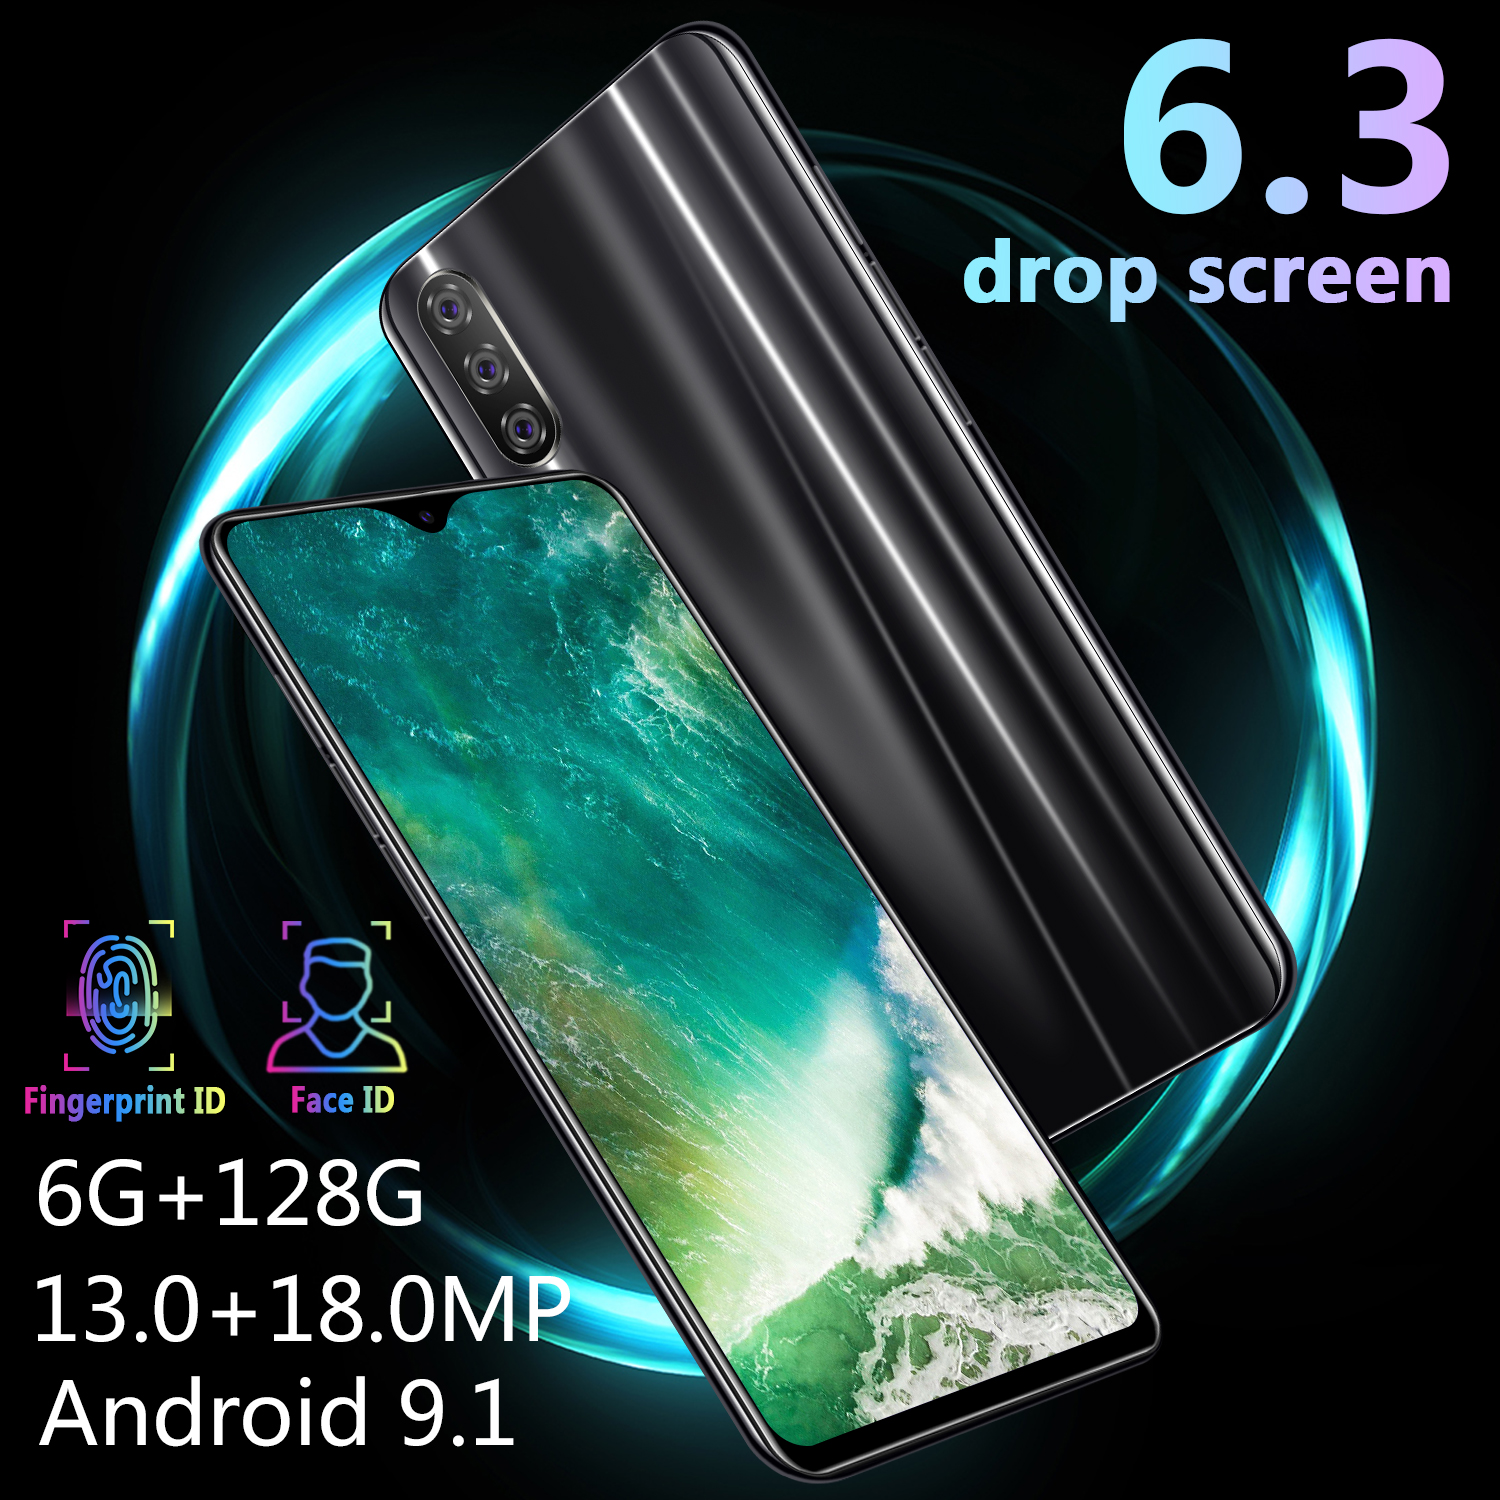 CHAOAI M9 Smartphone 6GB 128GB Global Version Smart Cell Phone 6.3 inch Water Drop Screen Dual Sim 3G Mobile-in Cellphones from Cellphones & Telecommunications